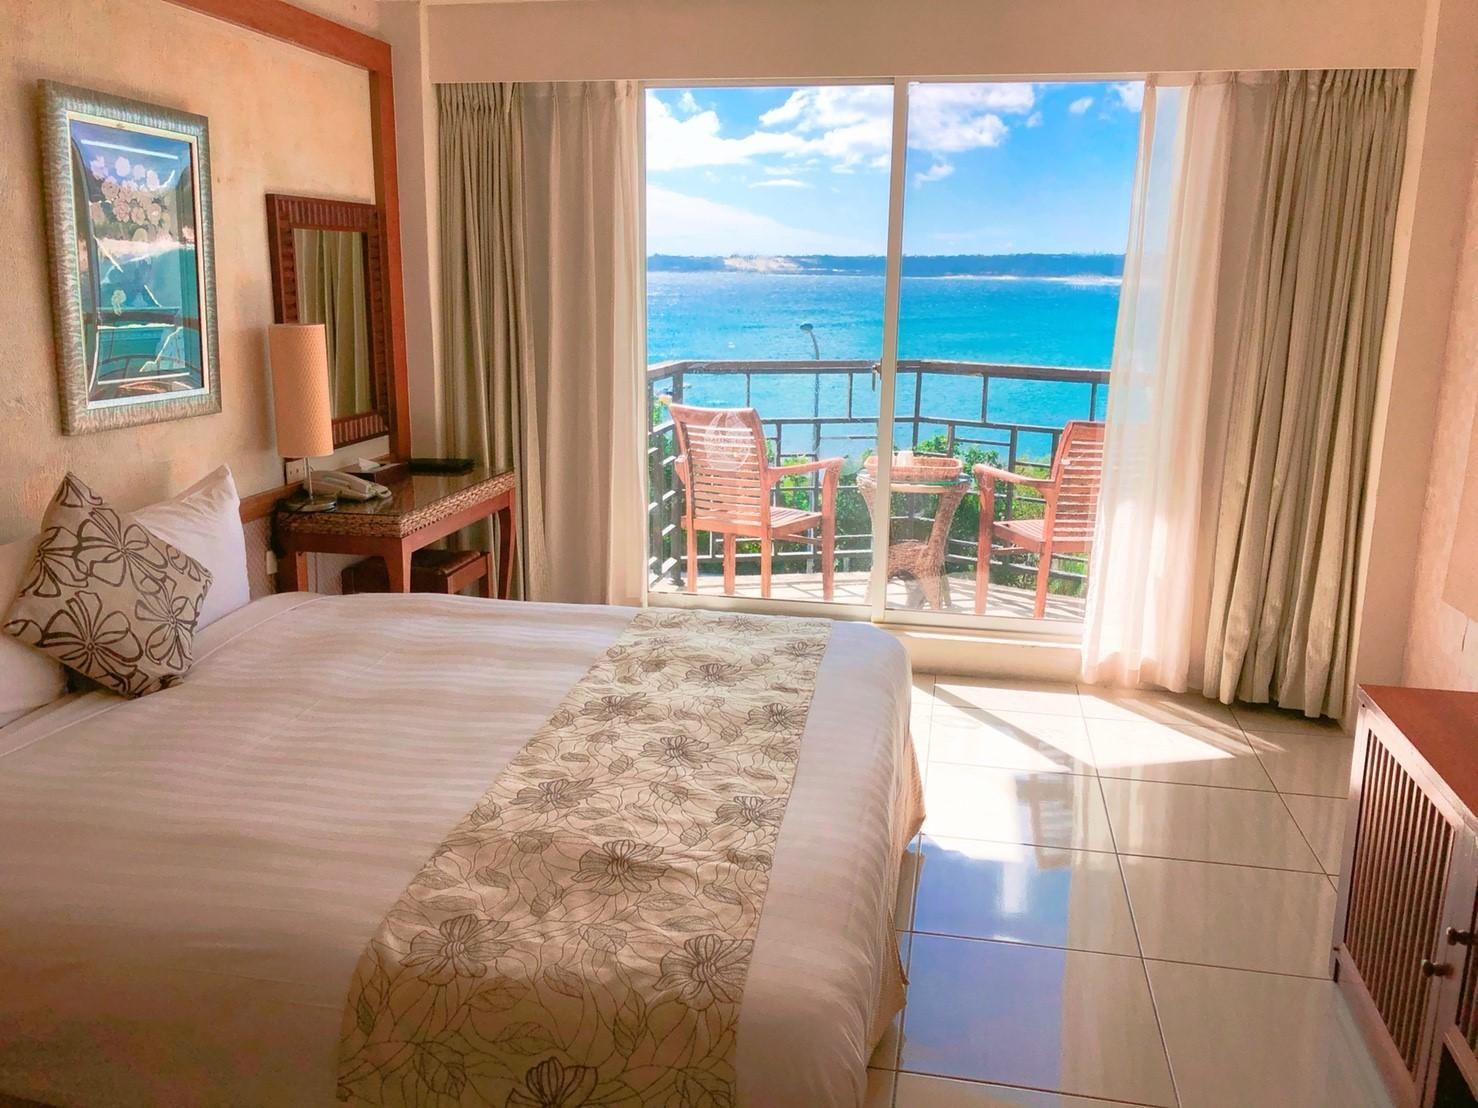 海景雙人房 (Sea View Double Room)